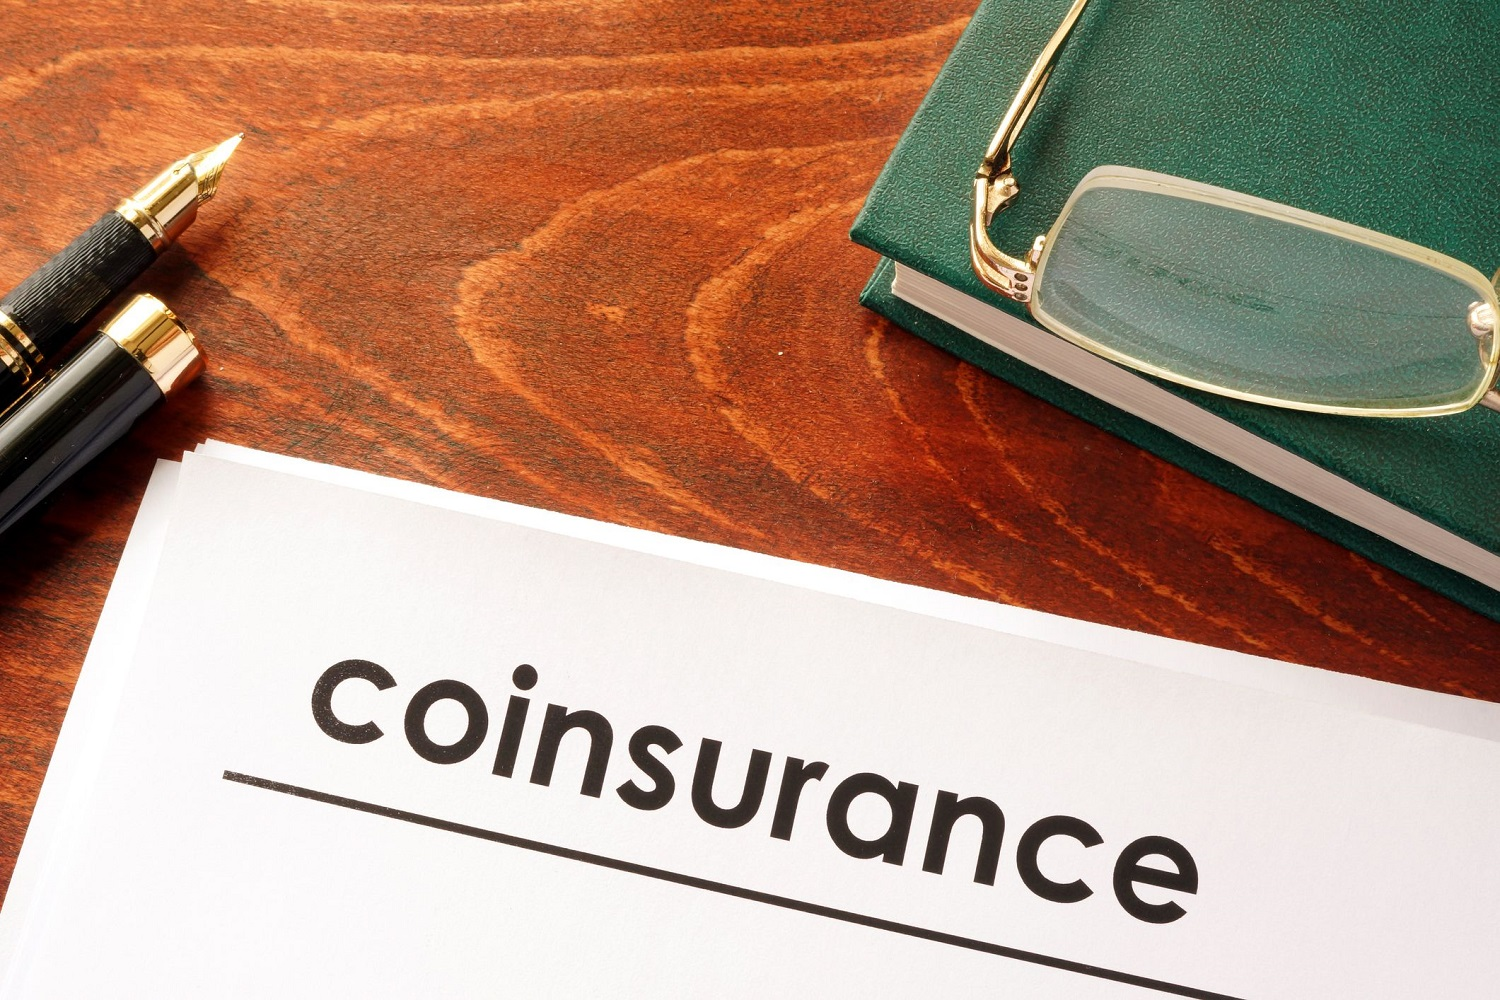 What Is Coinsurance When It Comes to Healthcare?